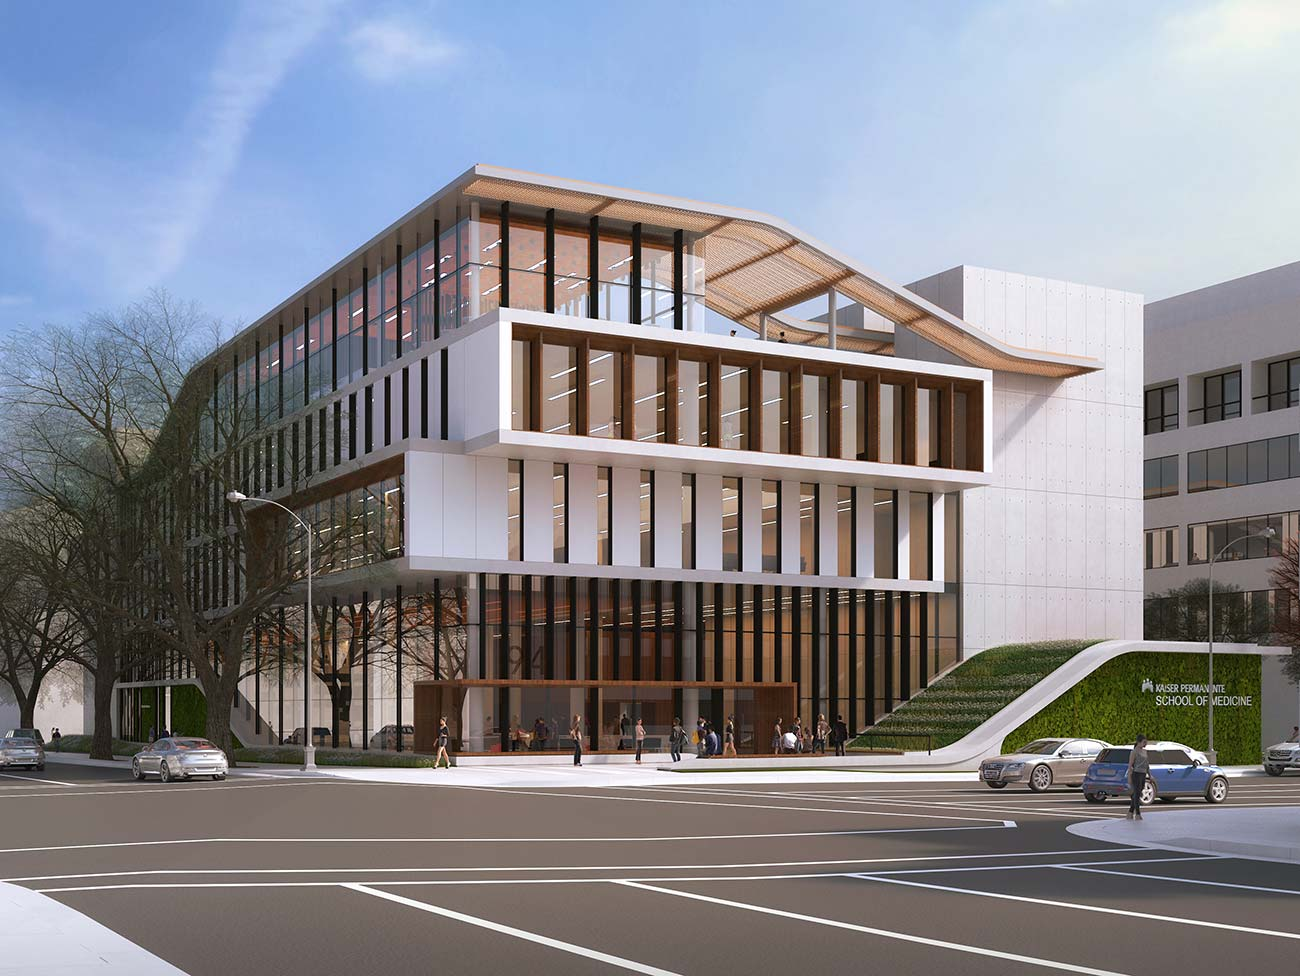 Kaiser Permanente School of Medicine to open Summer 2020